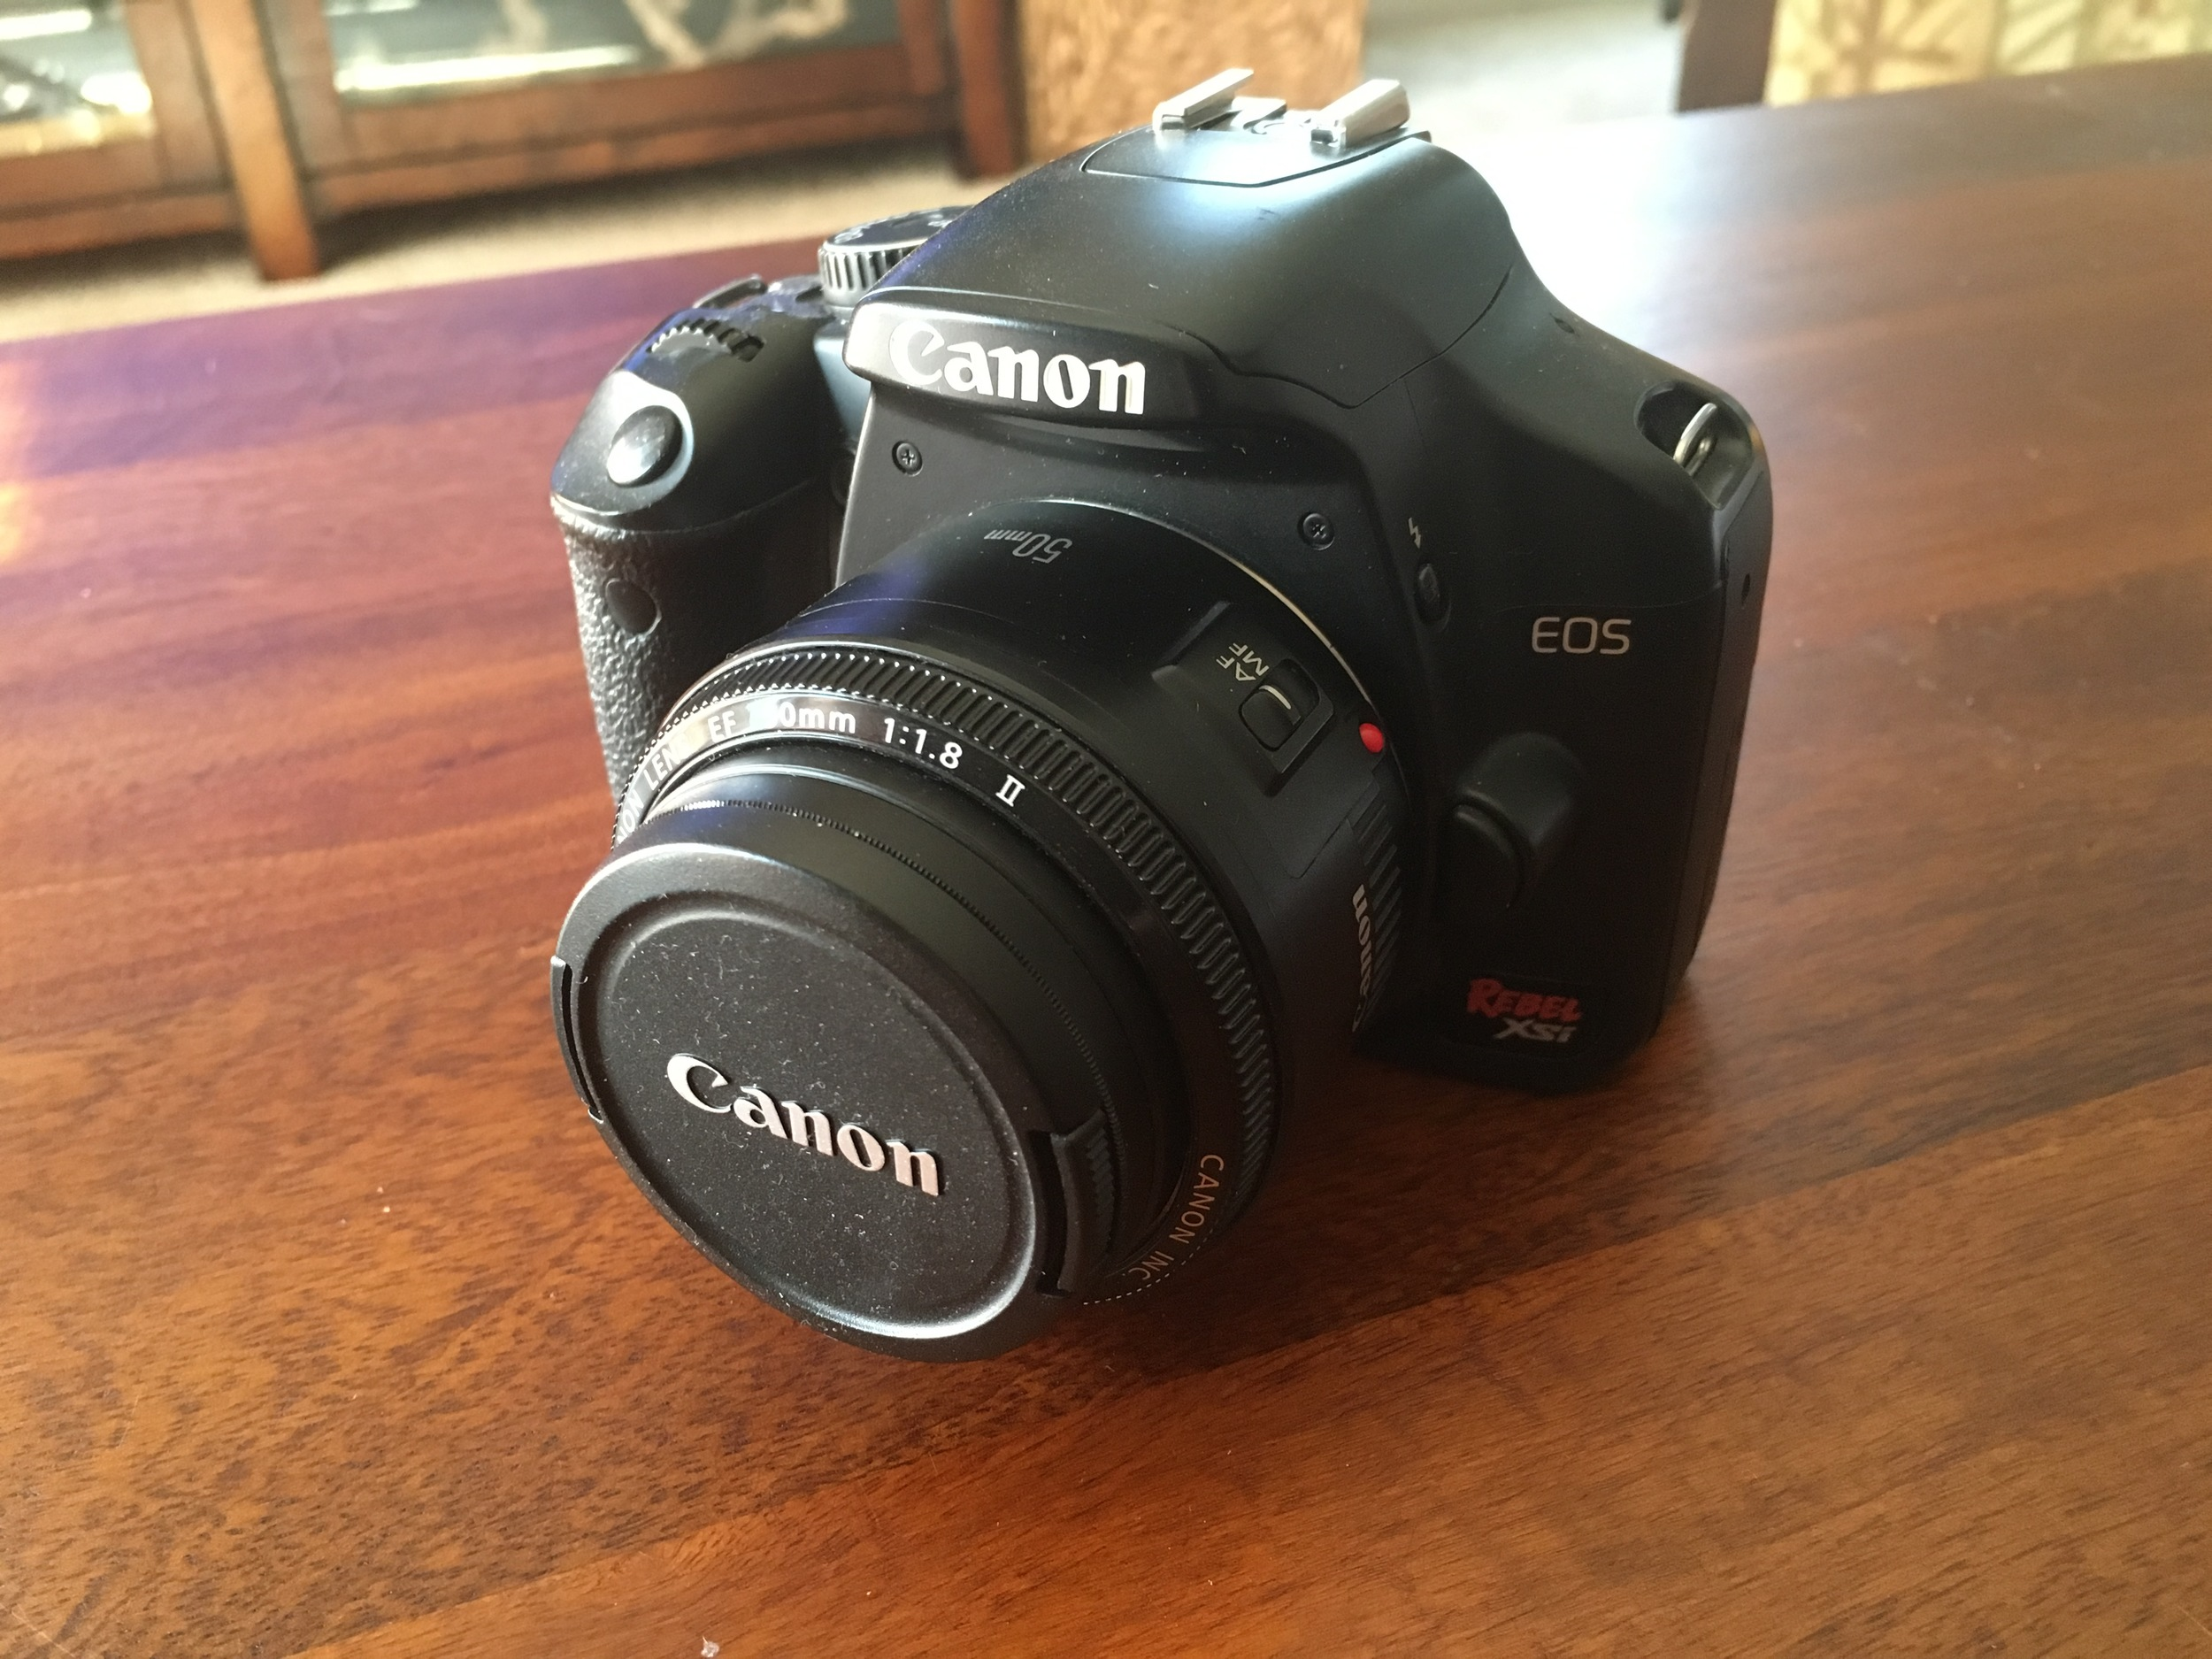 My first digital camera (DSLR) a Canon Rebel XSI. With my Canon 50mm f/1.8 lens. My go to combination for a long time.